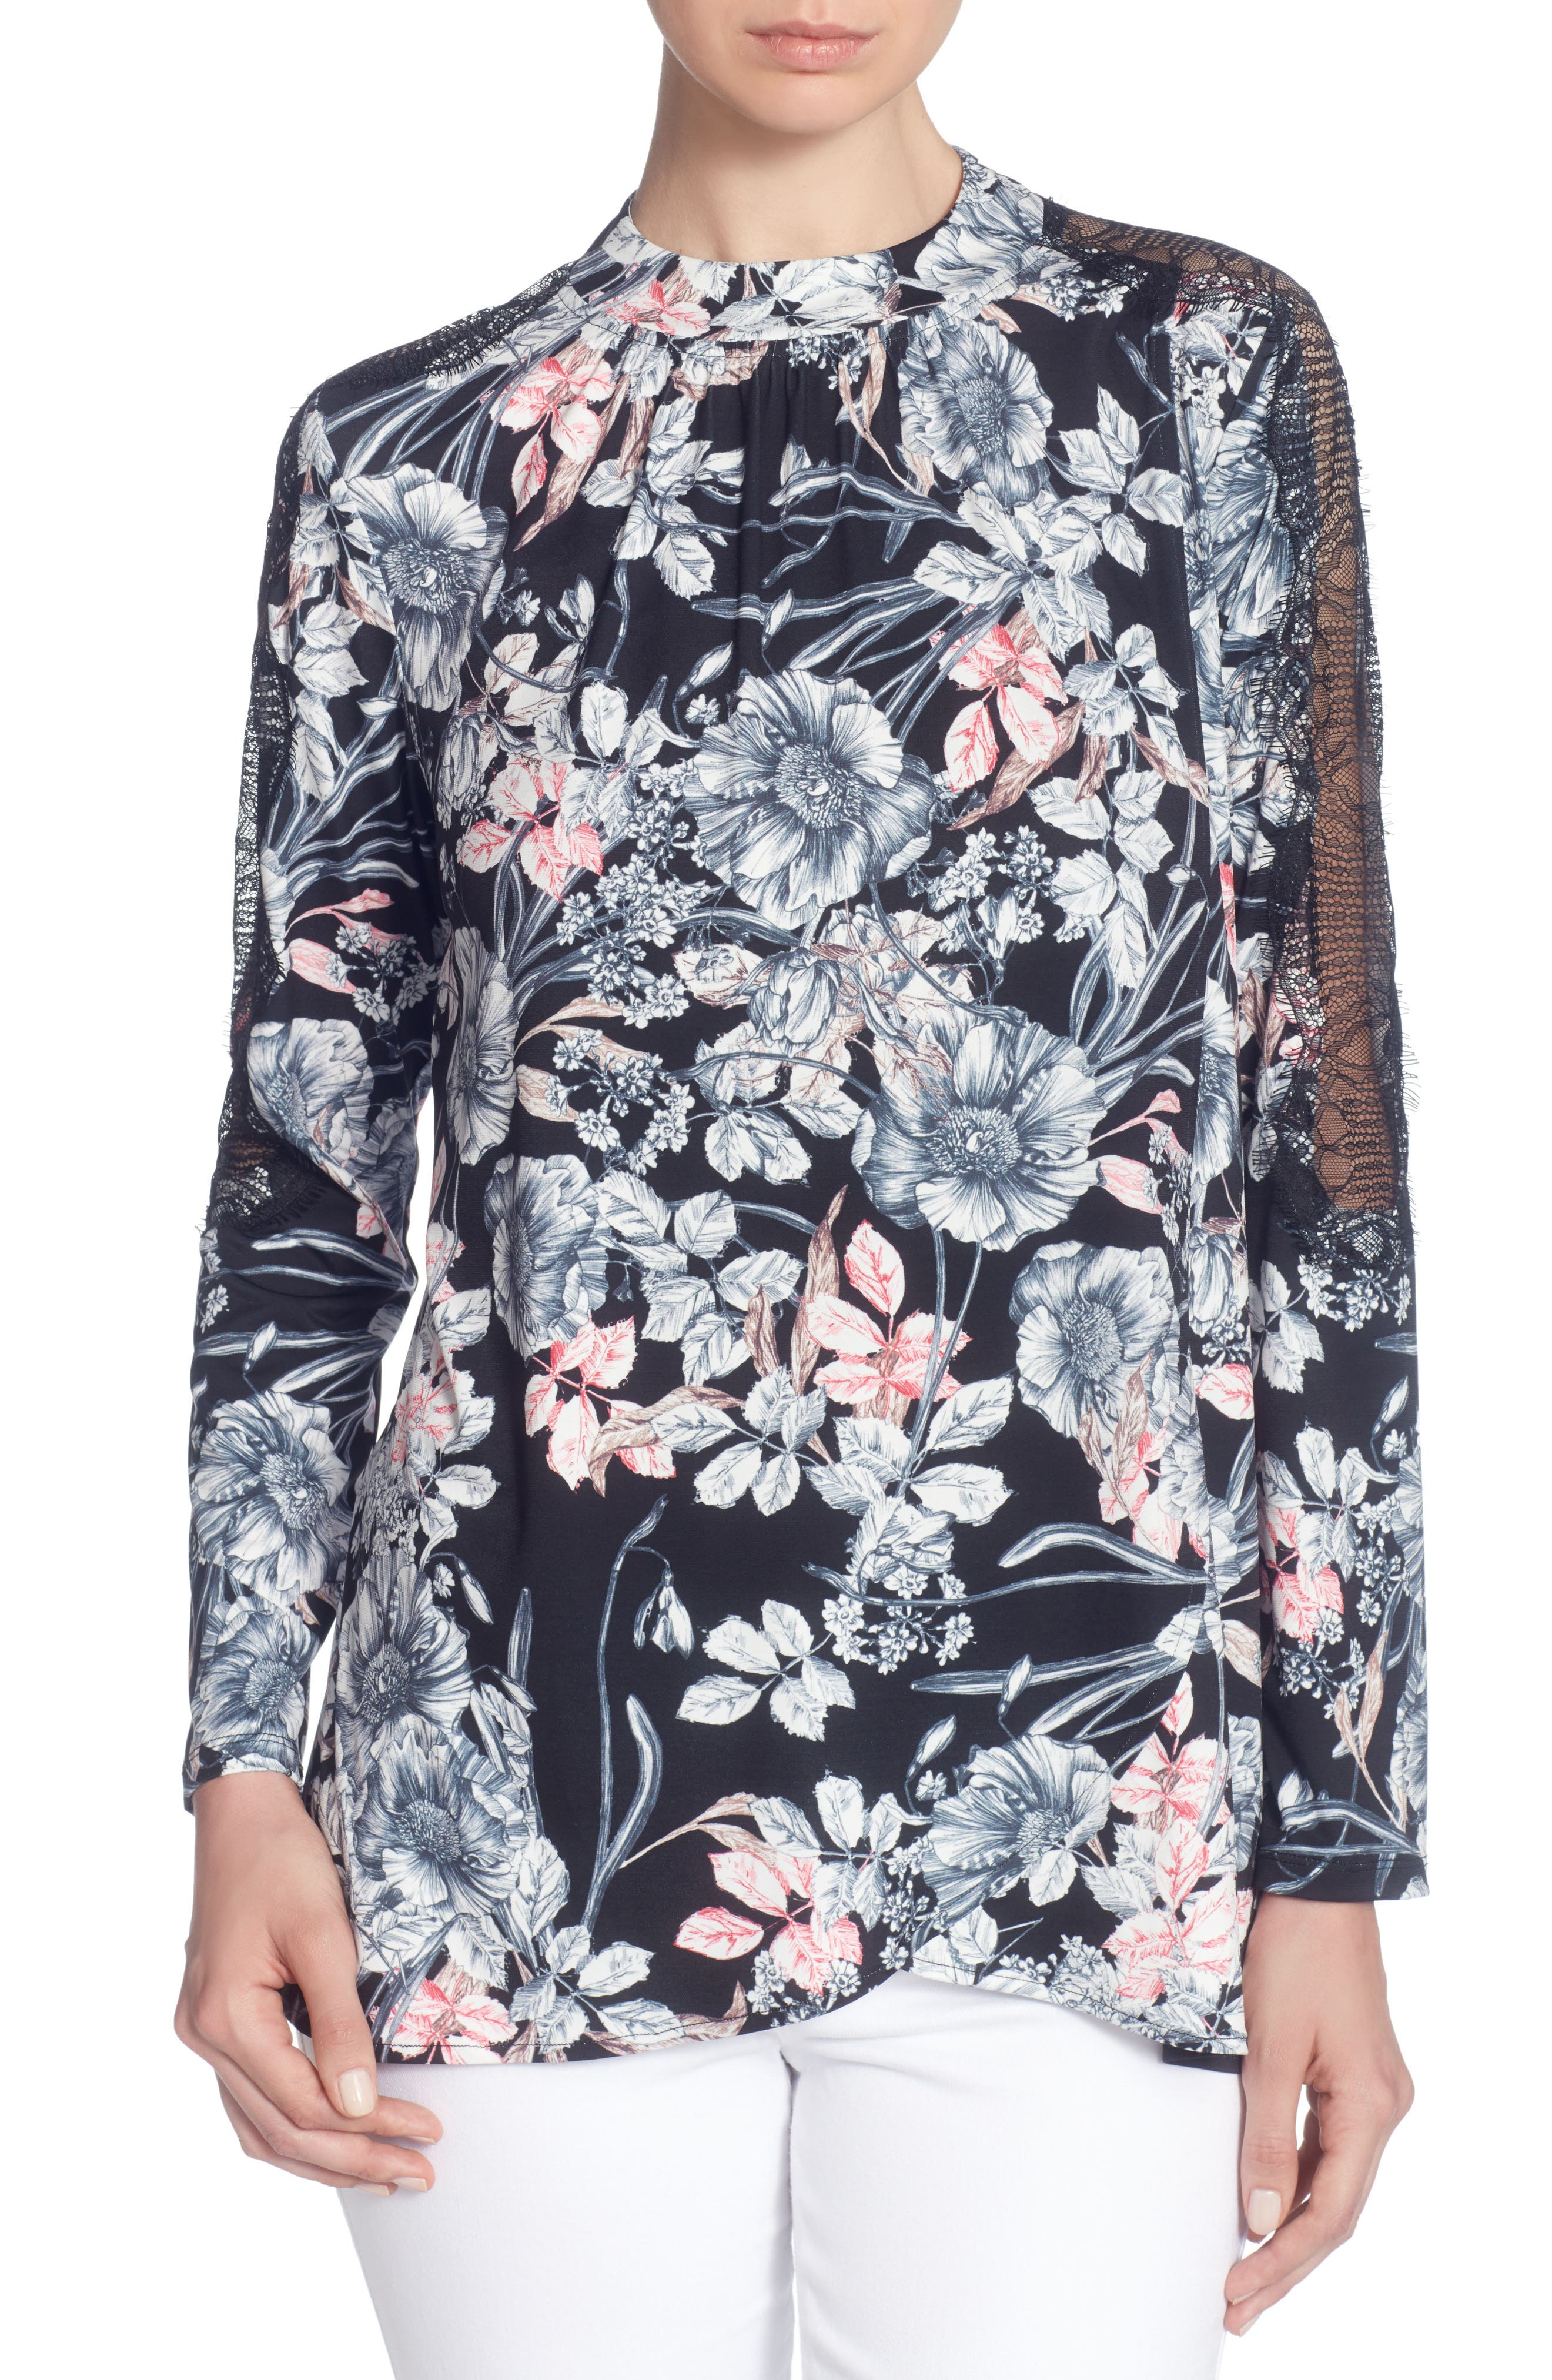 Poe Blouse,                         Main,                         color, French Floral Black